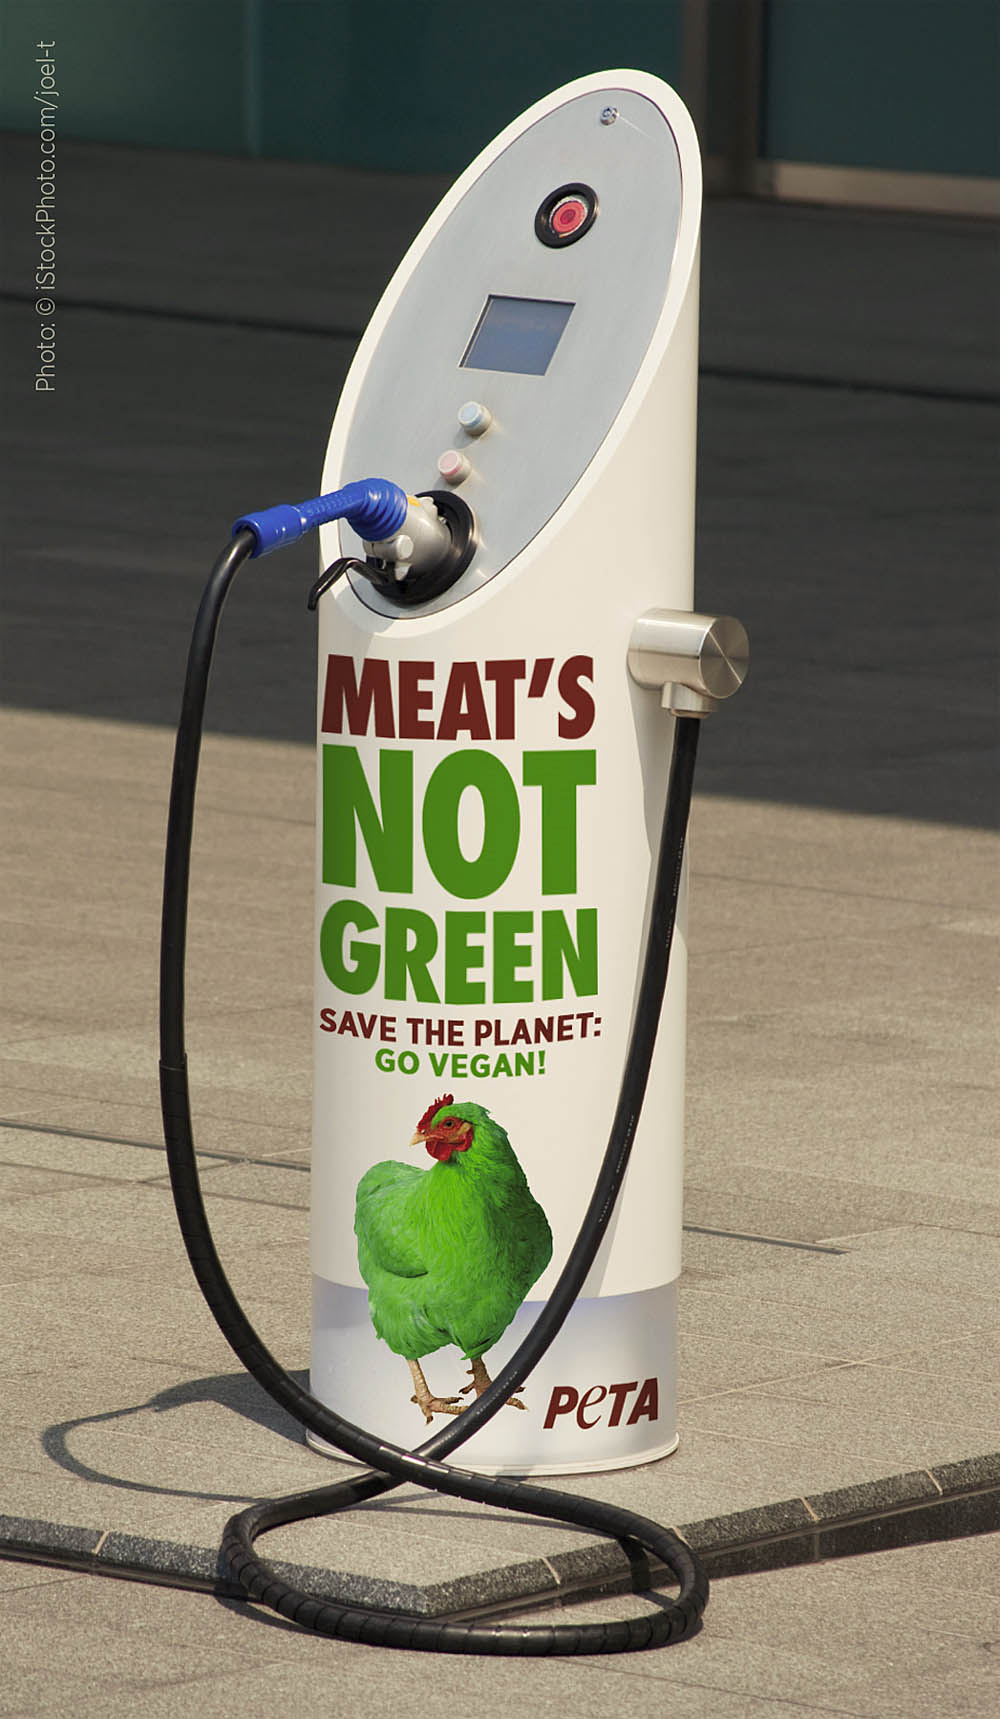 Peta Proposes Ads Urging Electric Car Drivers To Go Vegan